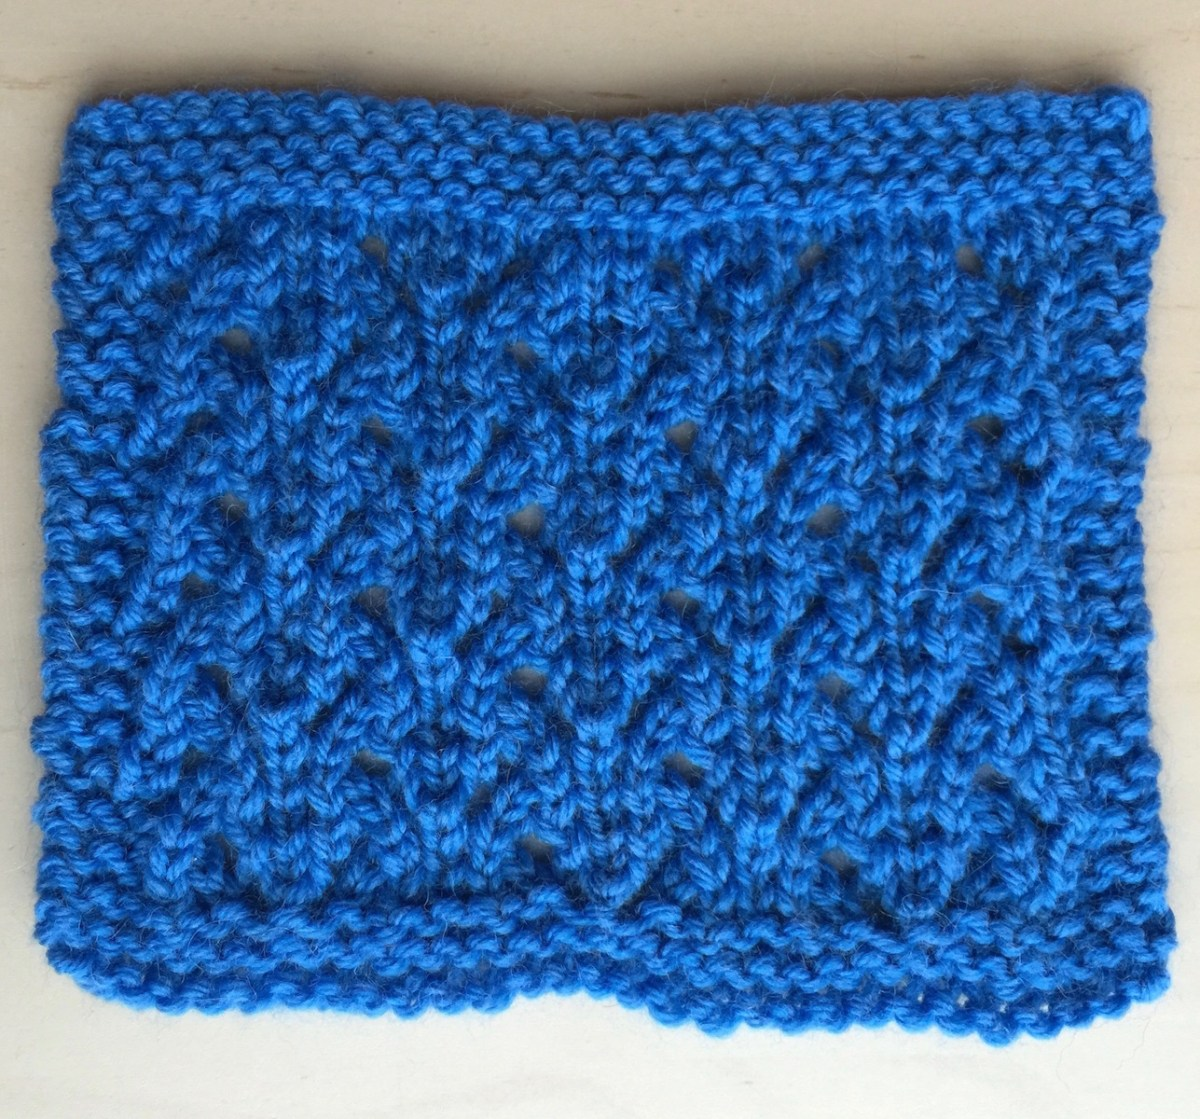 Swatch: Thistles (mult of 8 +1; 8 rows)